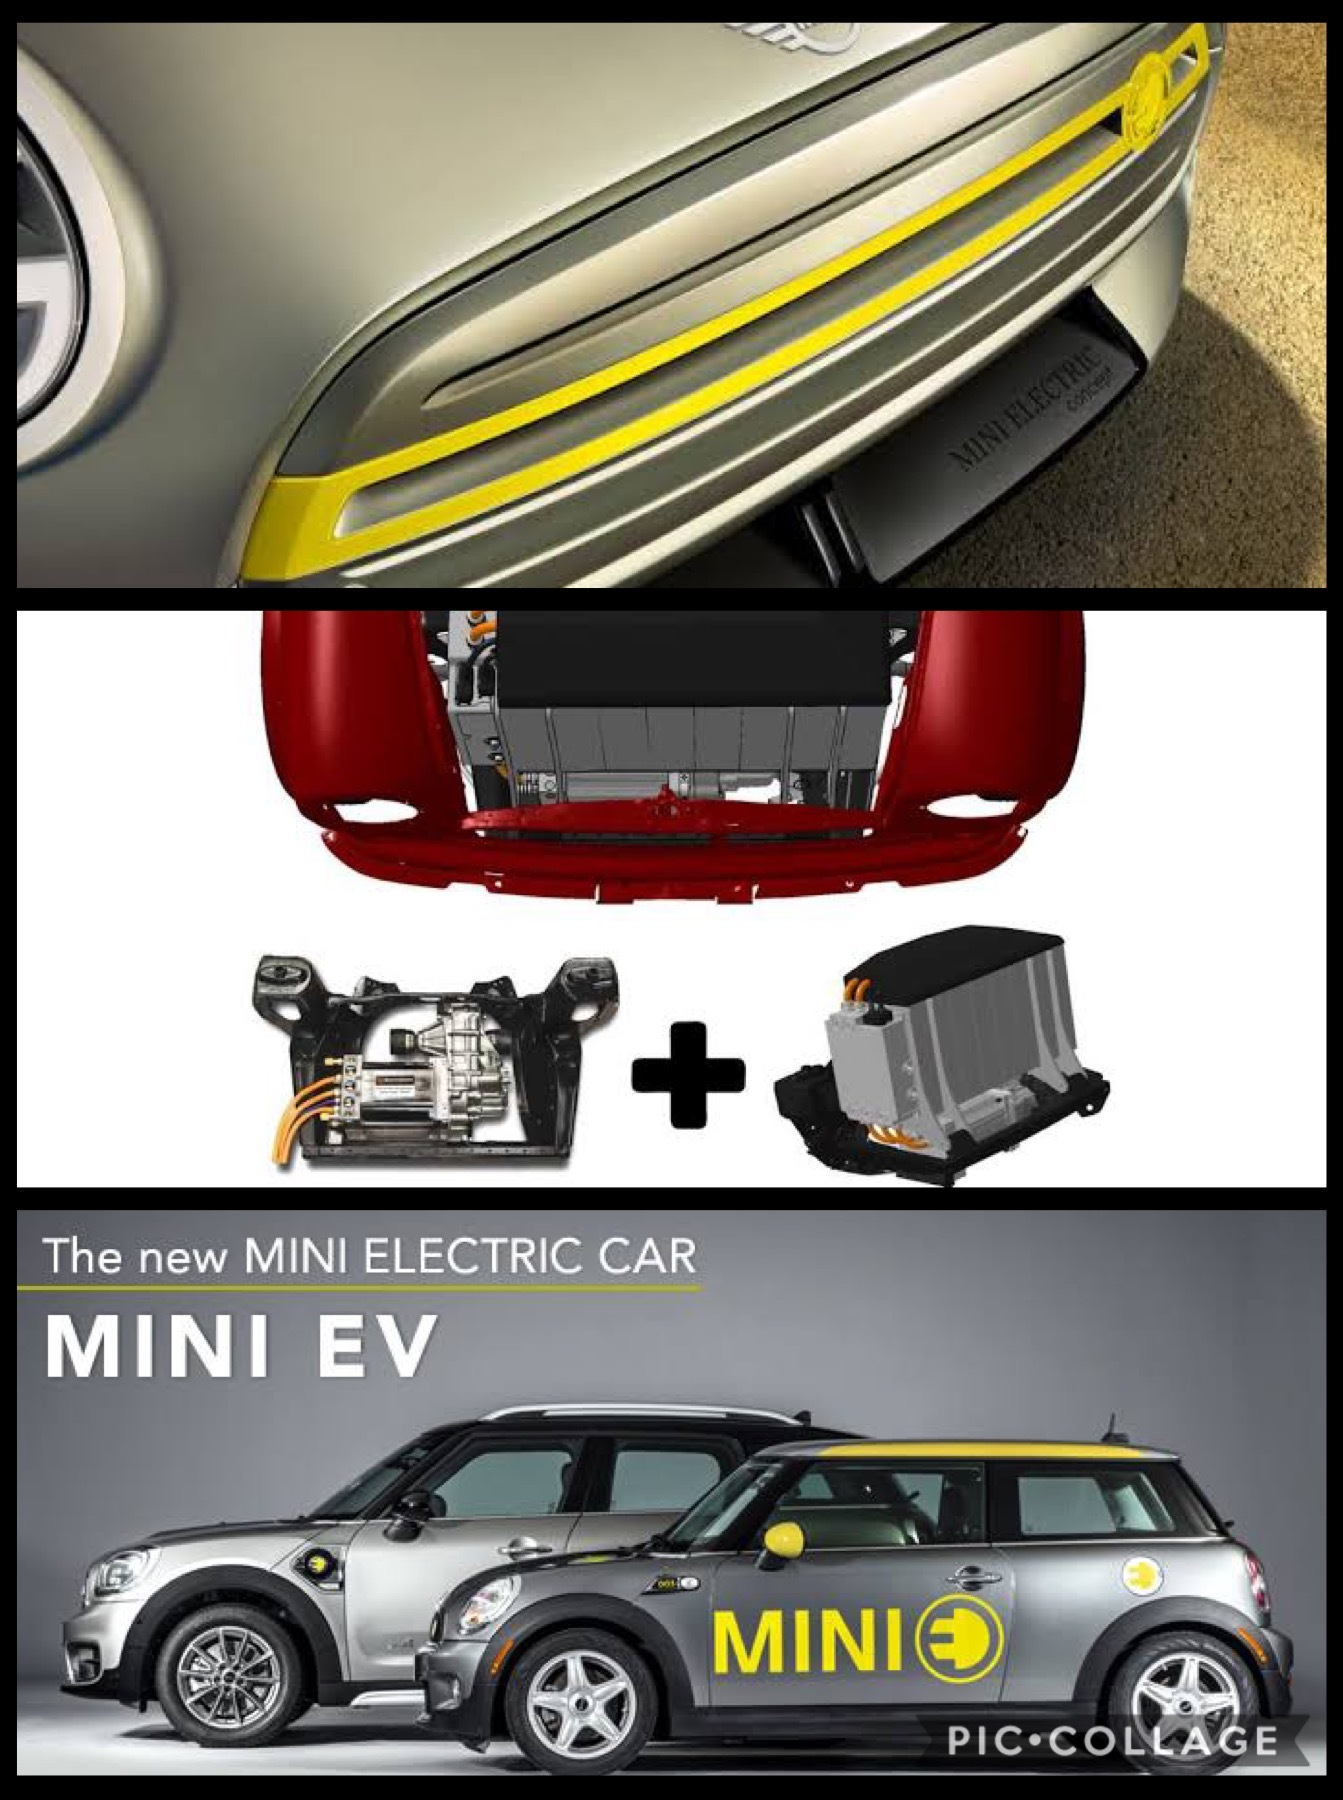 MINI EV powertrain ミニ